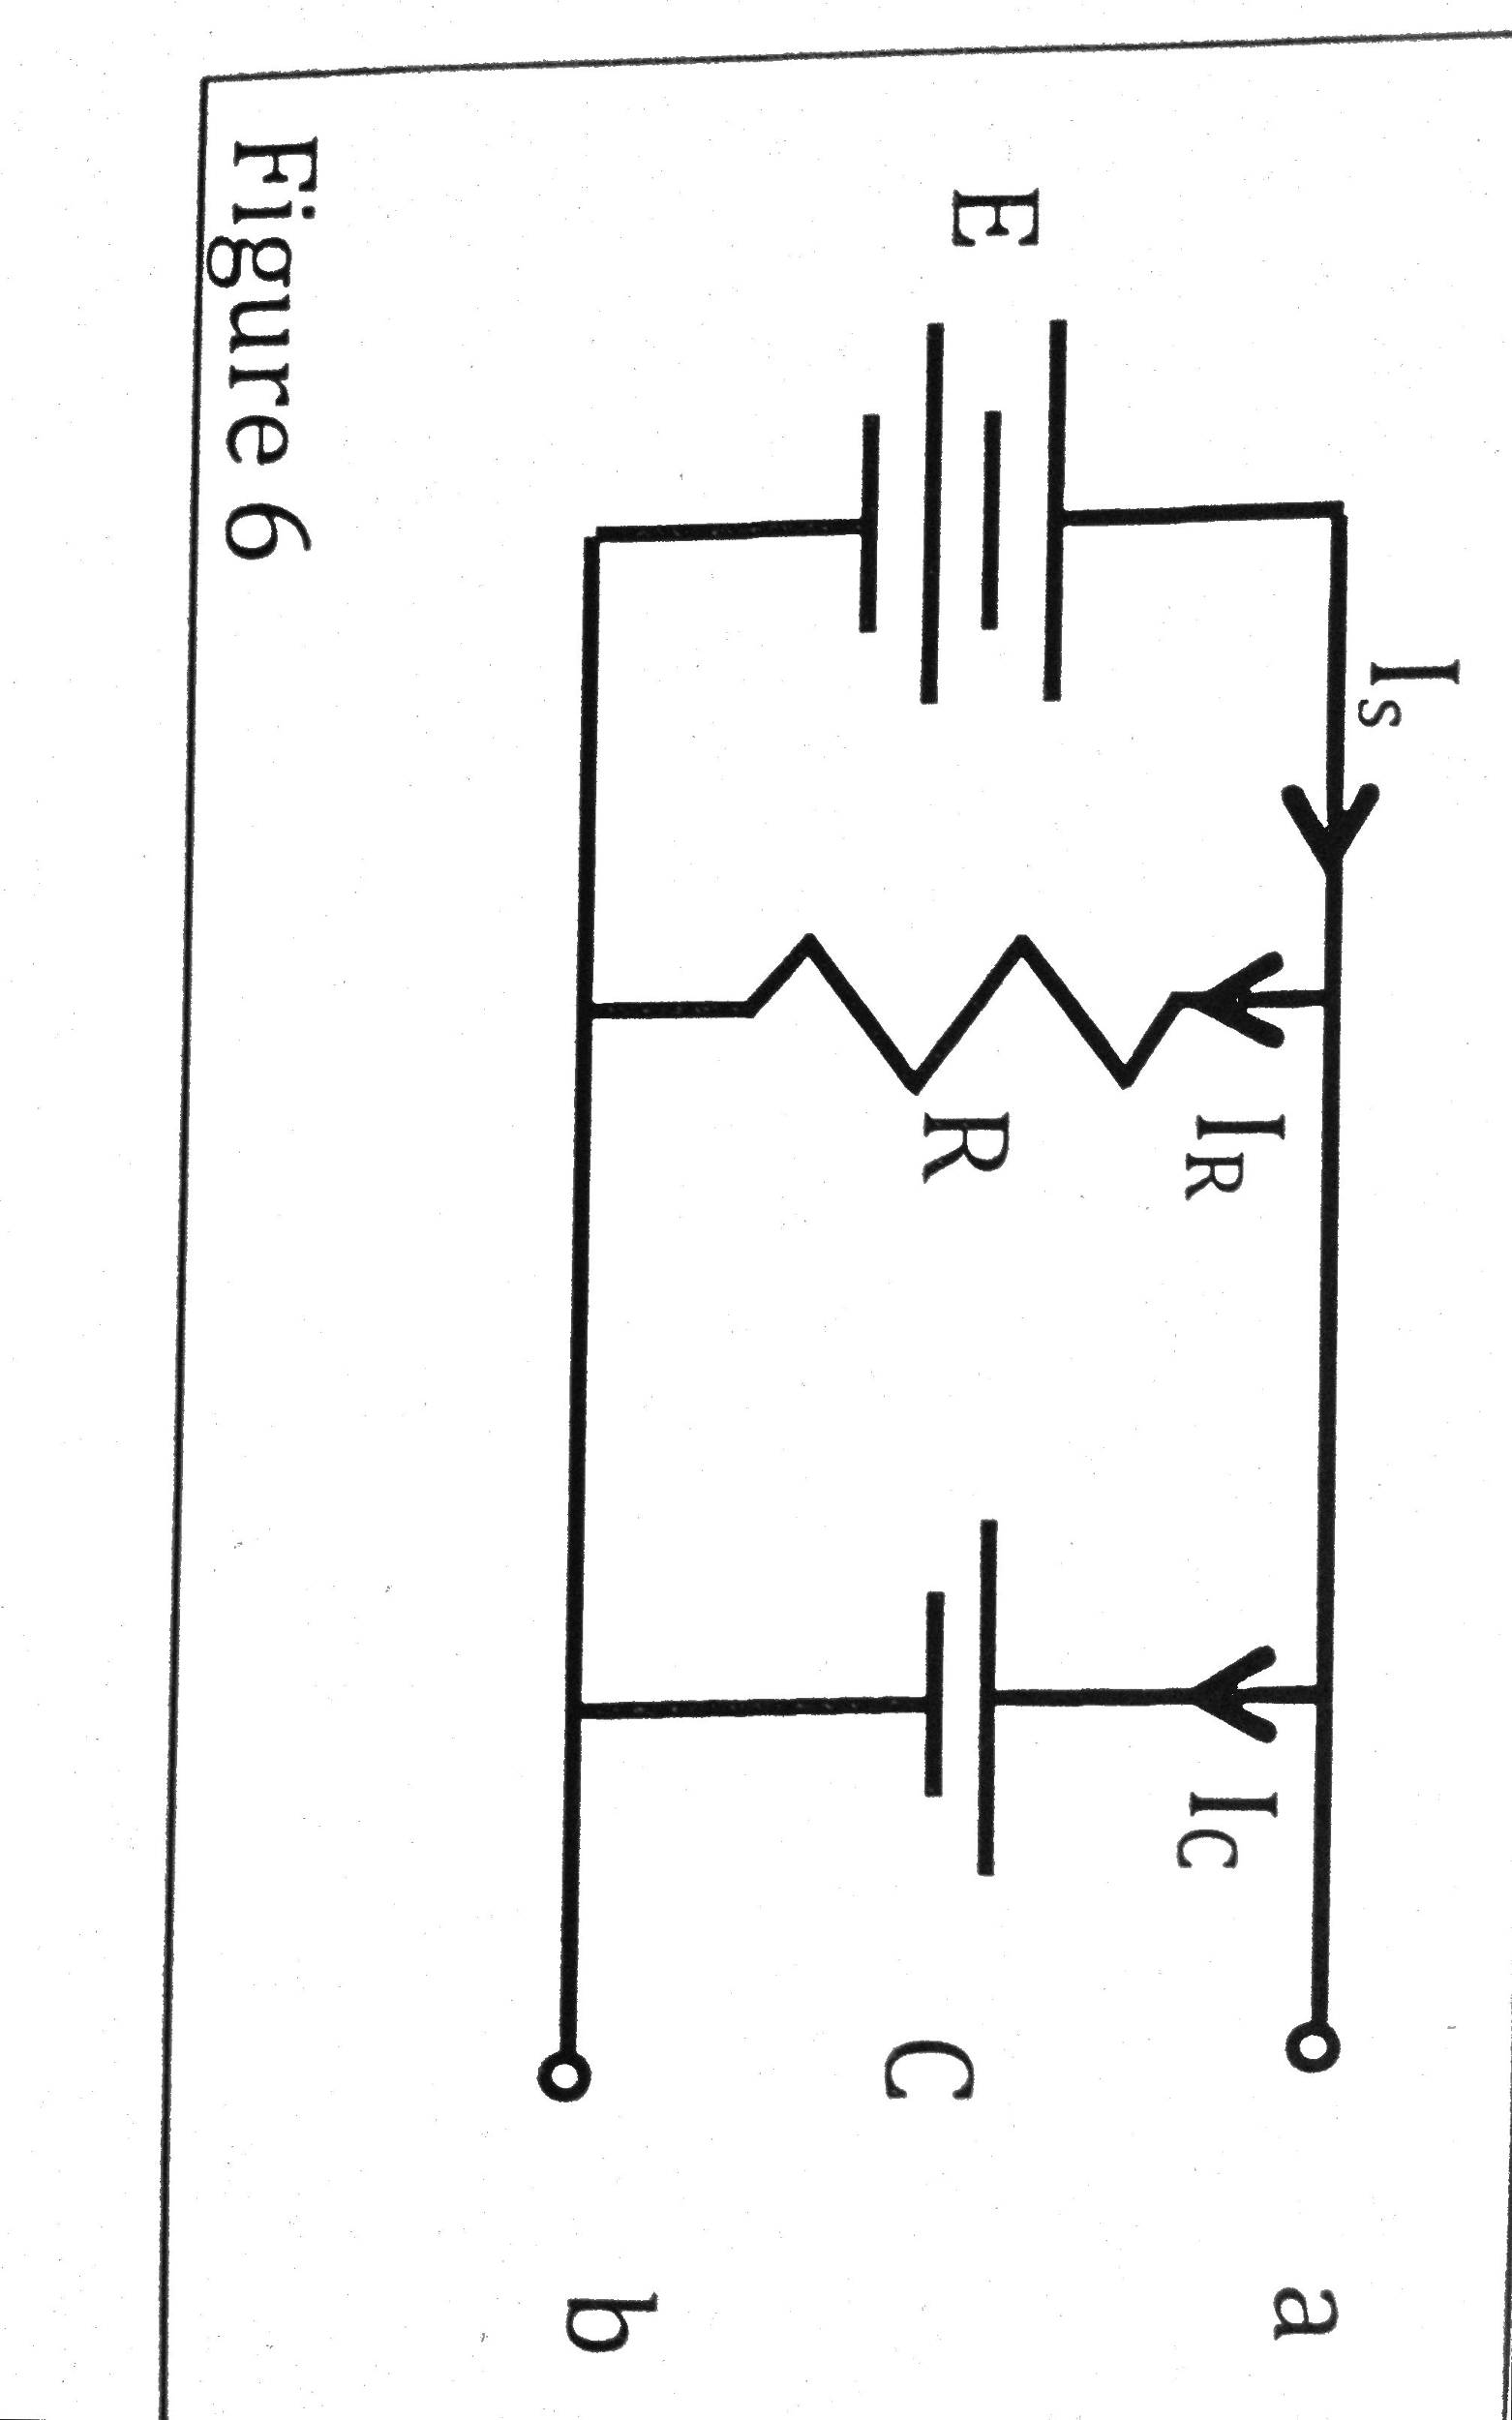 Figure 6 shows a circuit long after a switch (not